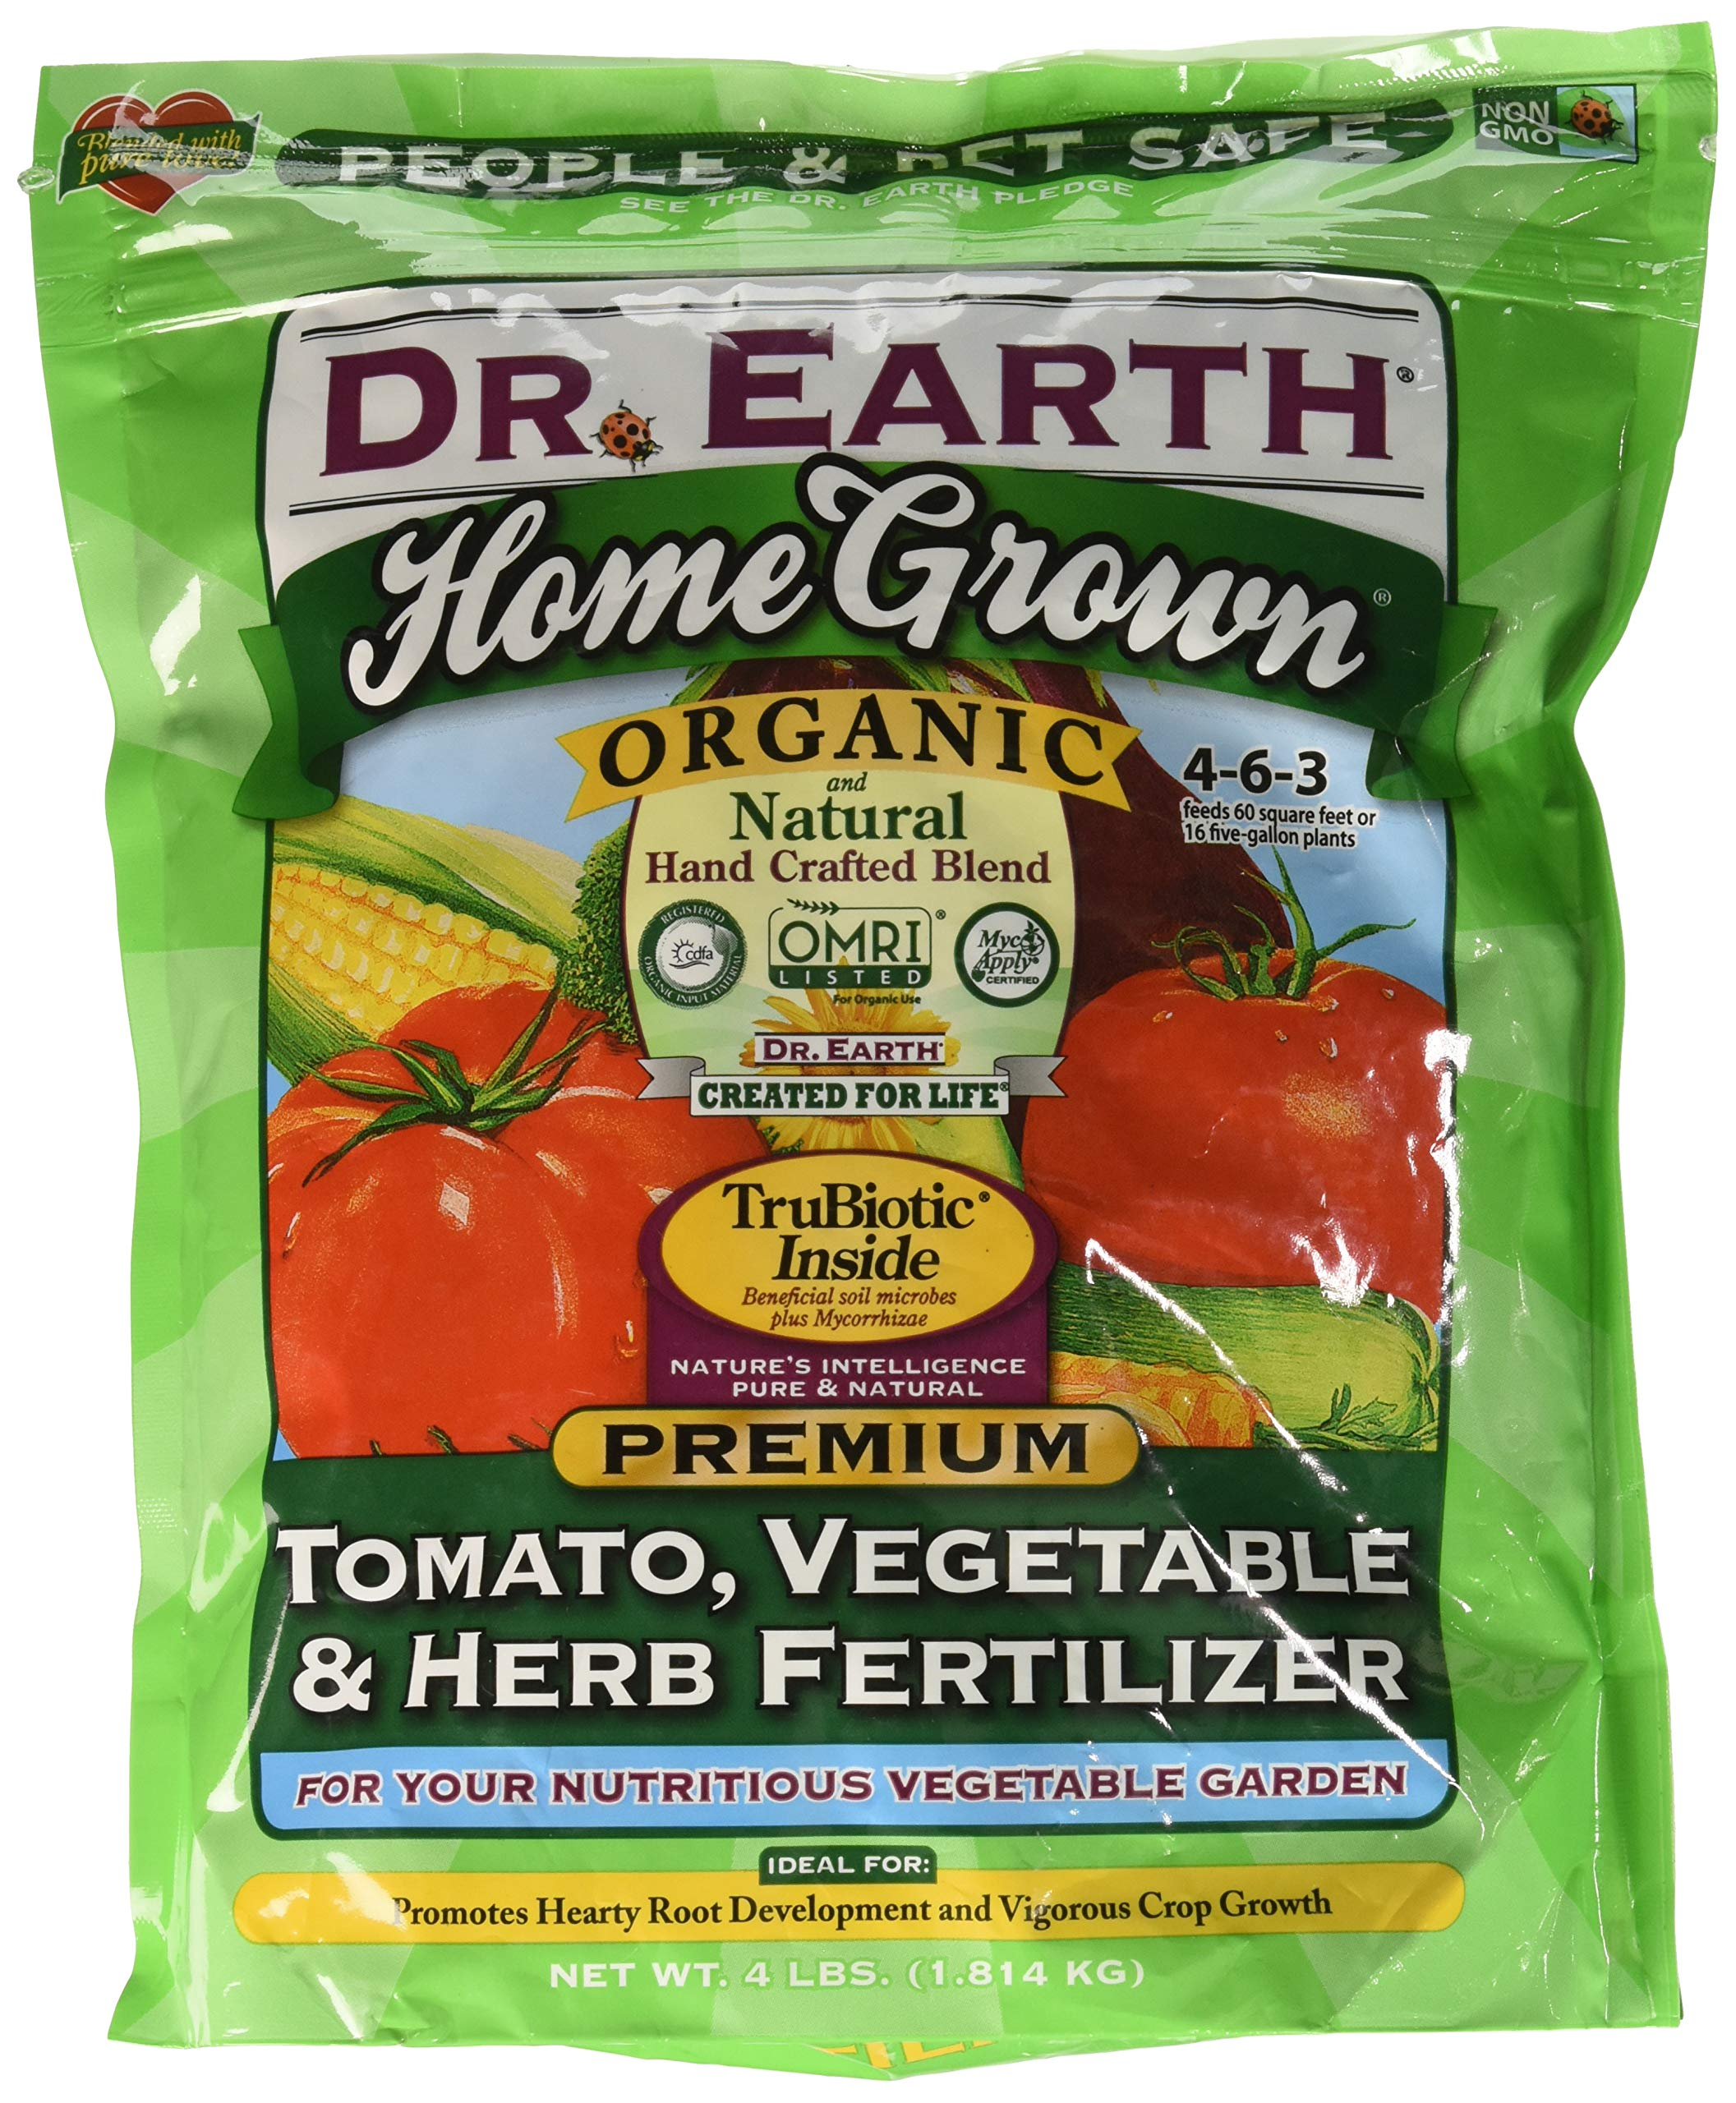 Vegetable garden fertilizer - When to fertilize vegetable garden ...